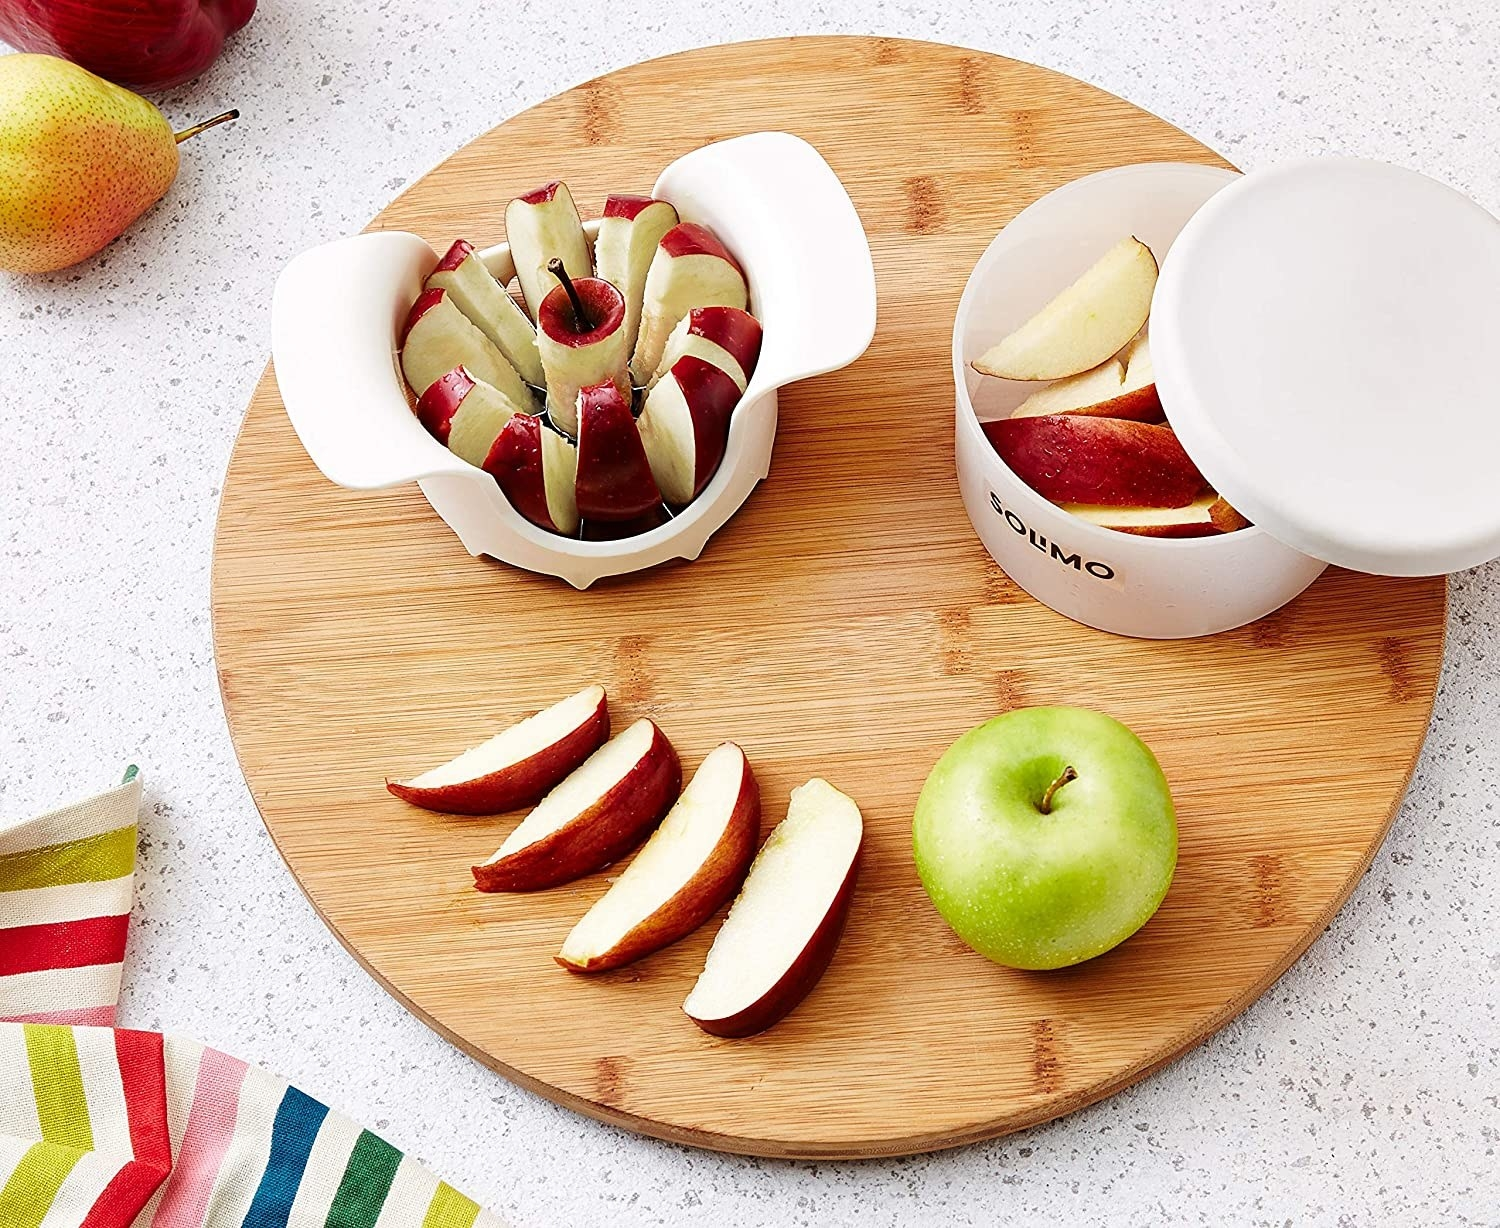 An apple cutter with apples on a cutting board